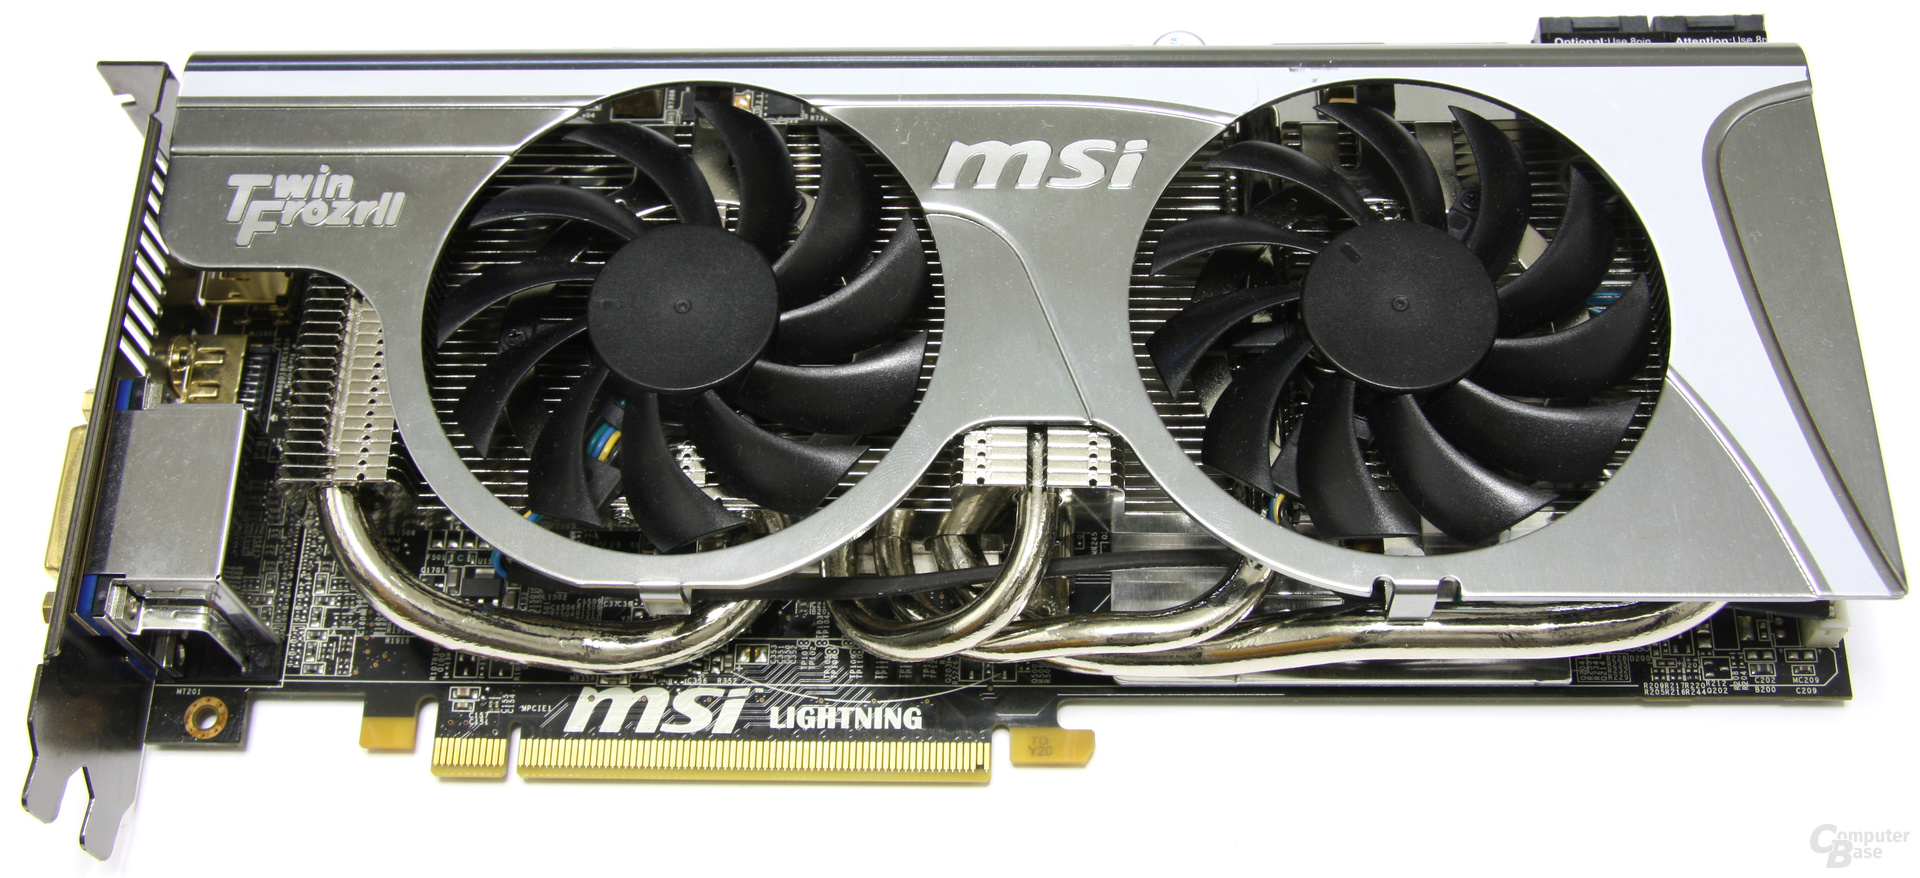 MSI Radeon HD 5870 Lightning